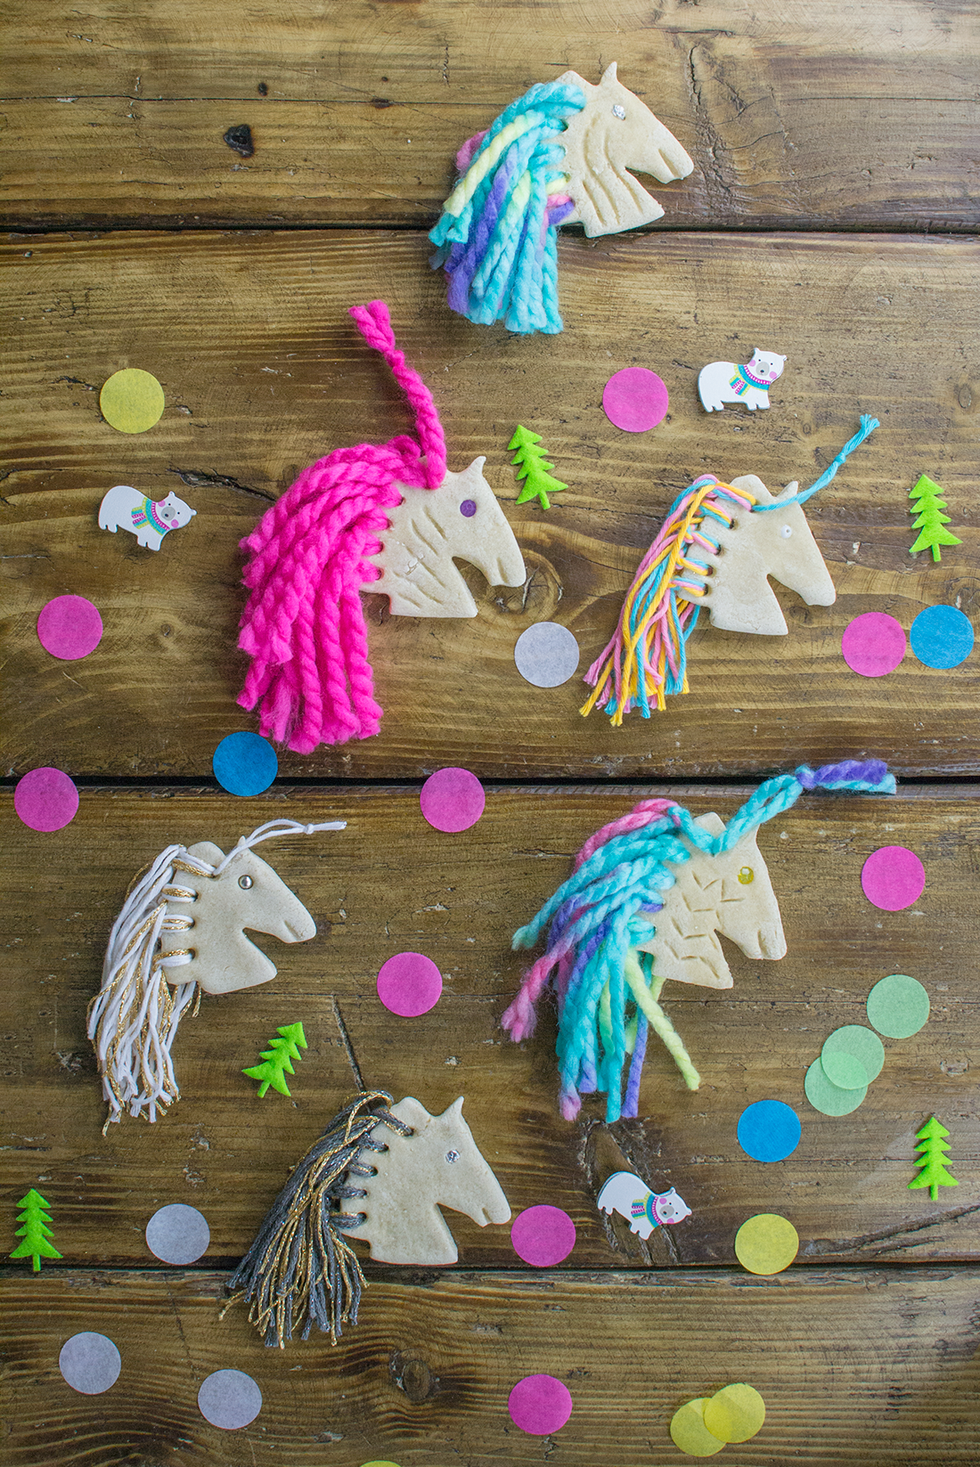 28 DIY Salt Dough Ornaments the Kids Will Love Making for Christmas